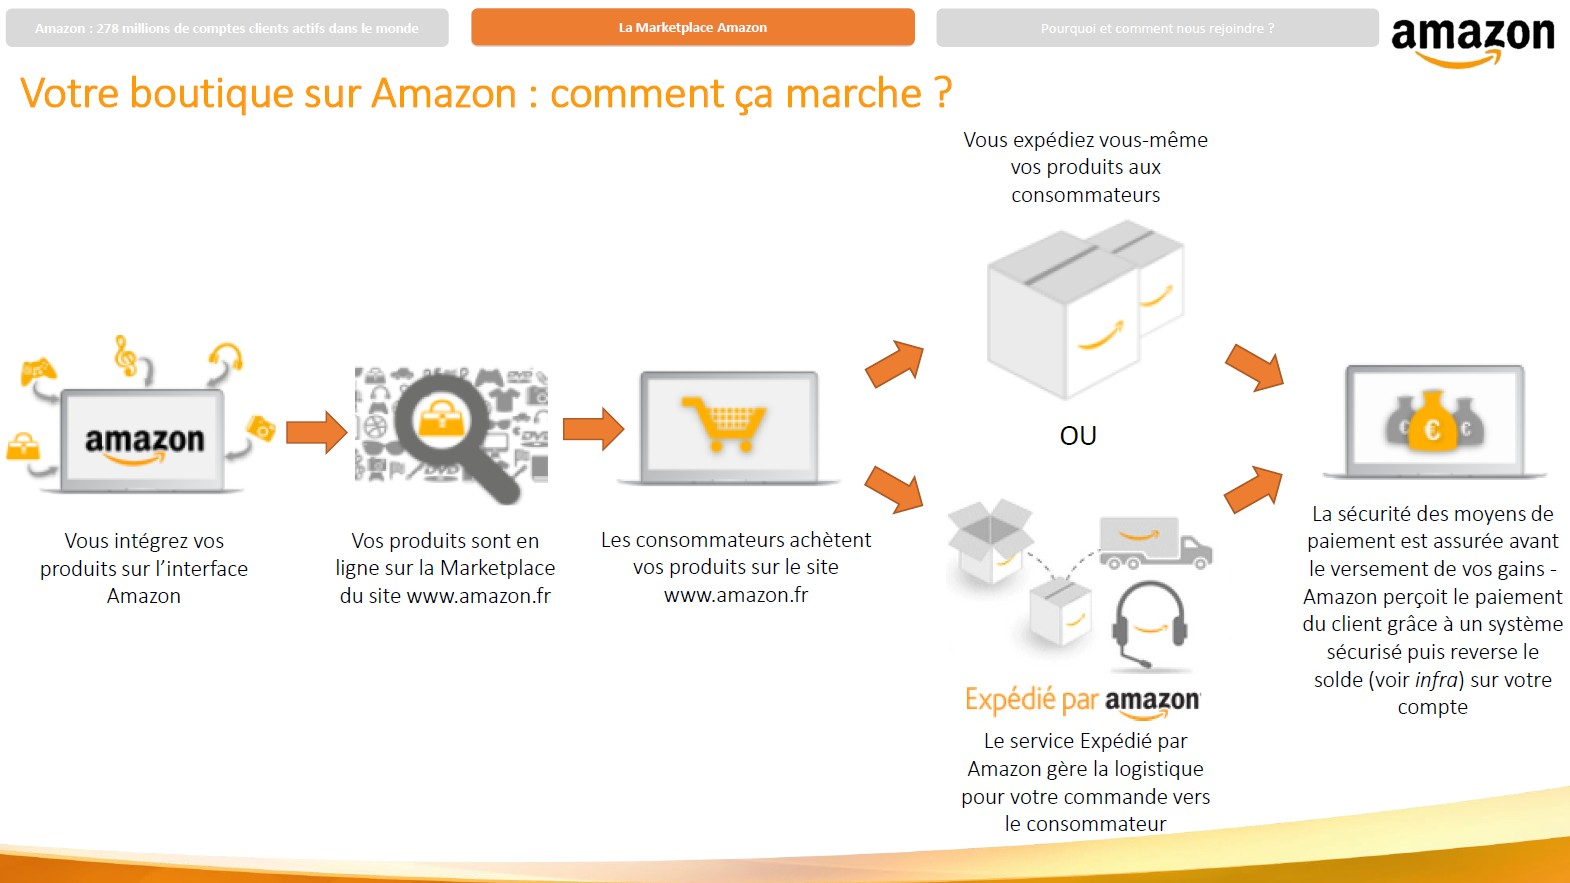 amazon mode emploi